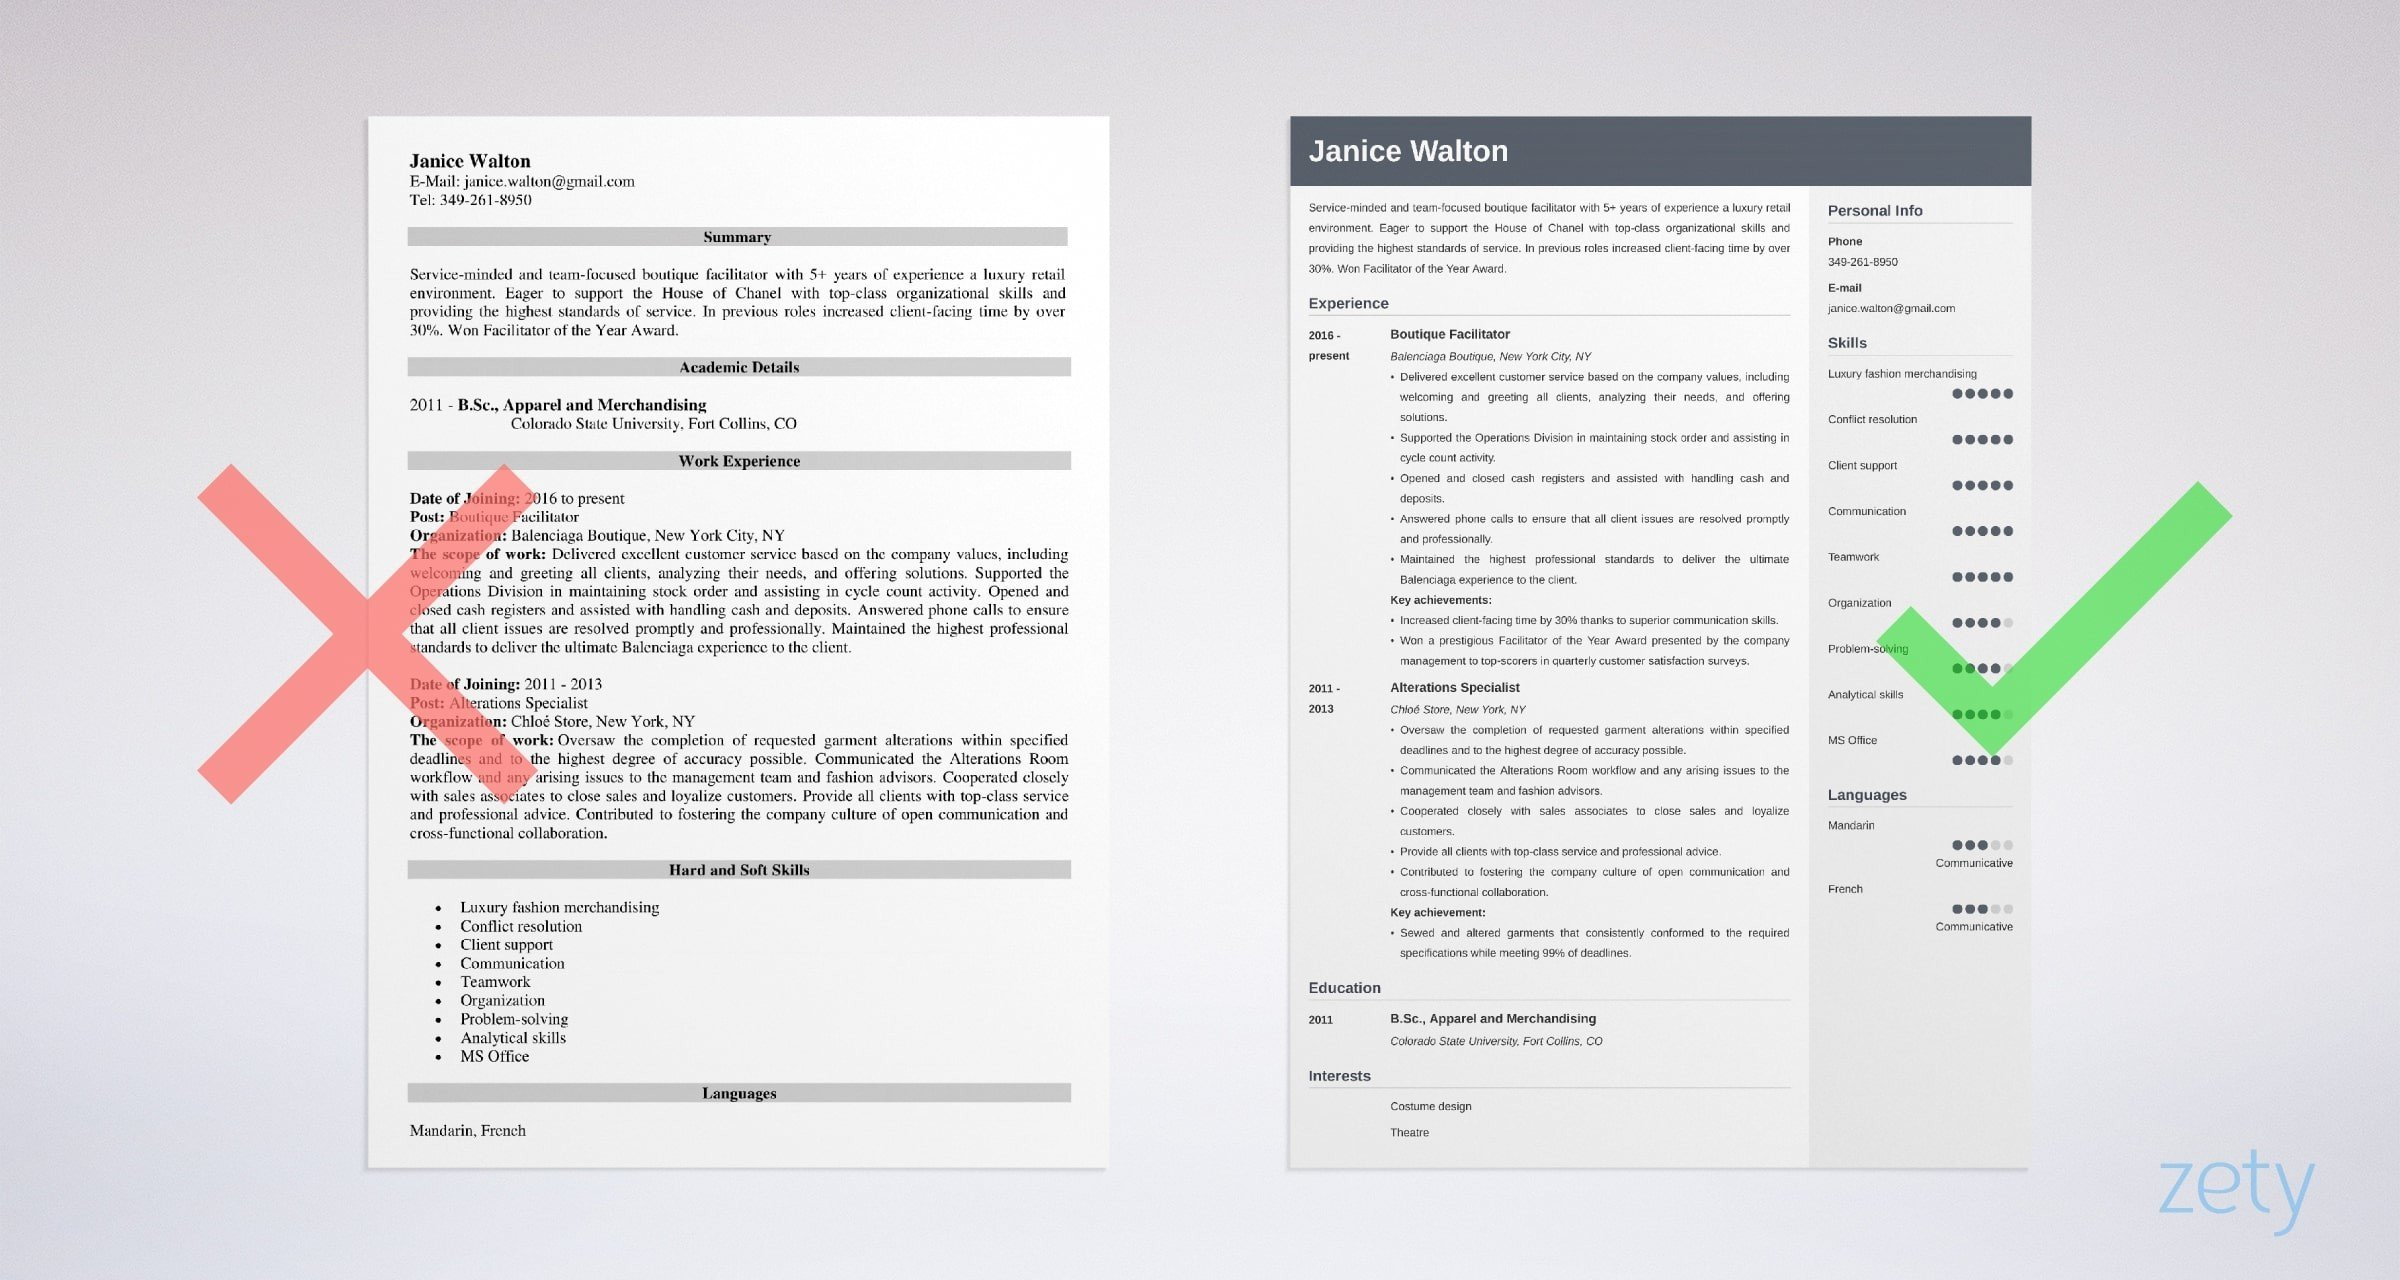 fashion resume examples templates guide with tips industry services example create google Resume Fashion Industry Resume Services